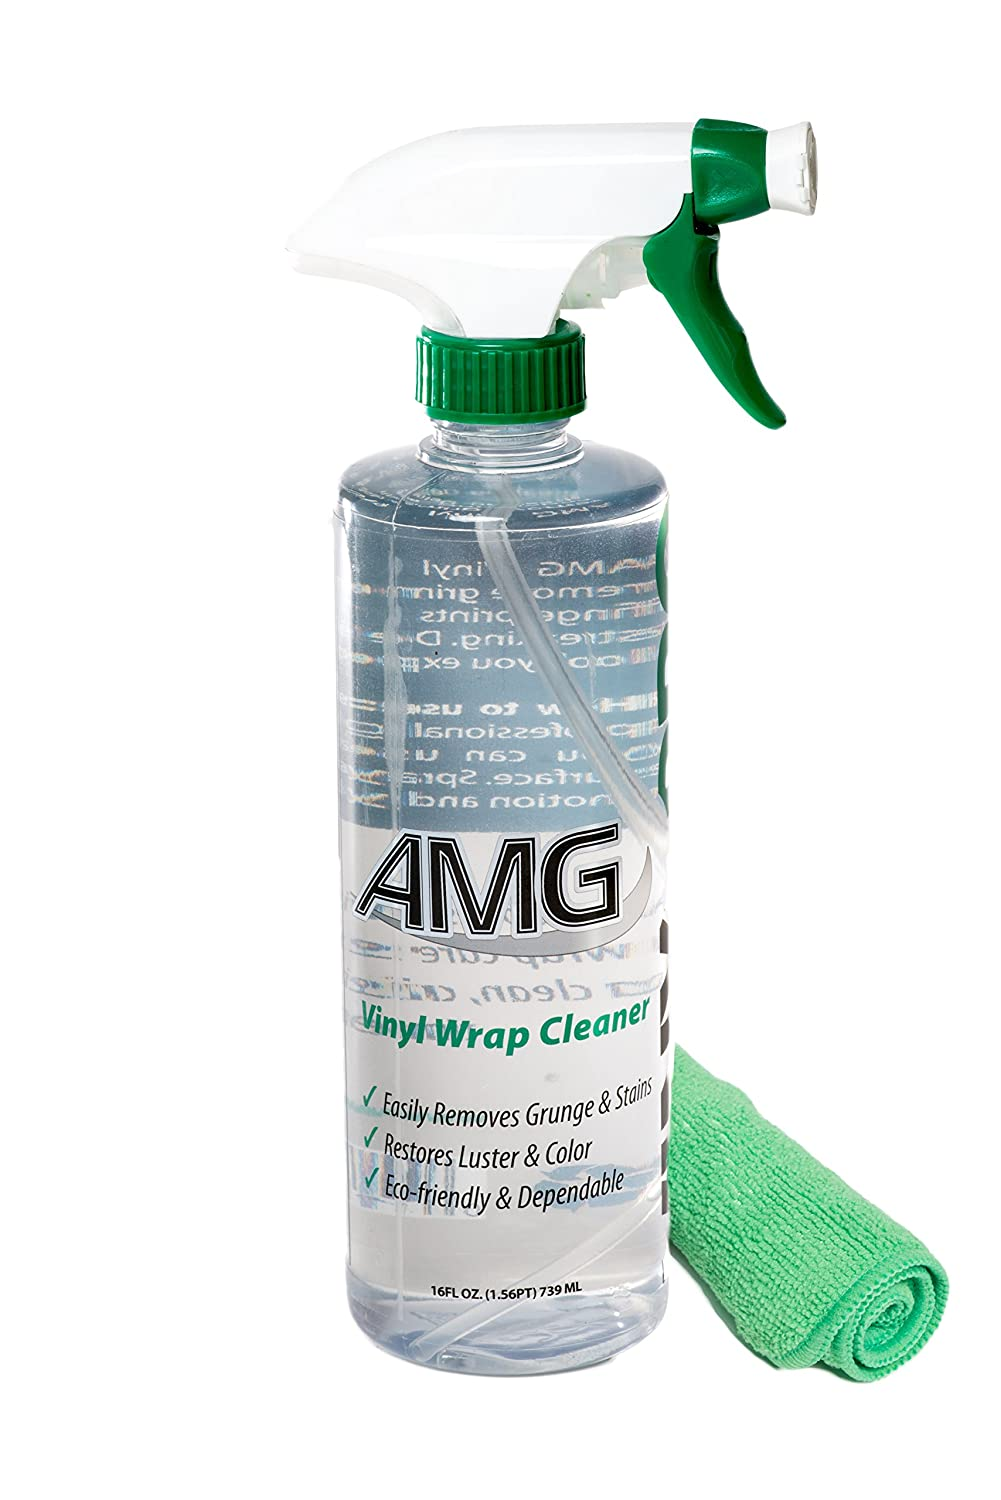 AMG Vinyl Pro Cleaner, Clean and Restore all Vinyl, Rubber, Plastic, Leather, Fiberglass Surfaces, Non-Toxic, with Green Microfiber Towel - Pro Cleaning Kit 16 fl. oz All Mighty Green